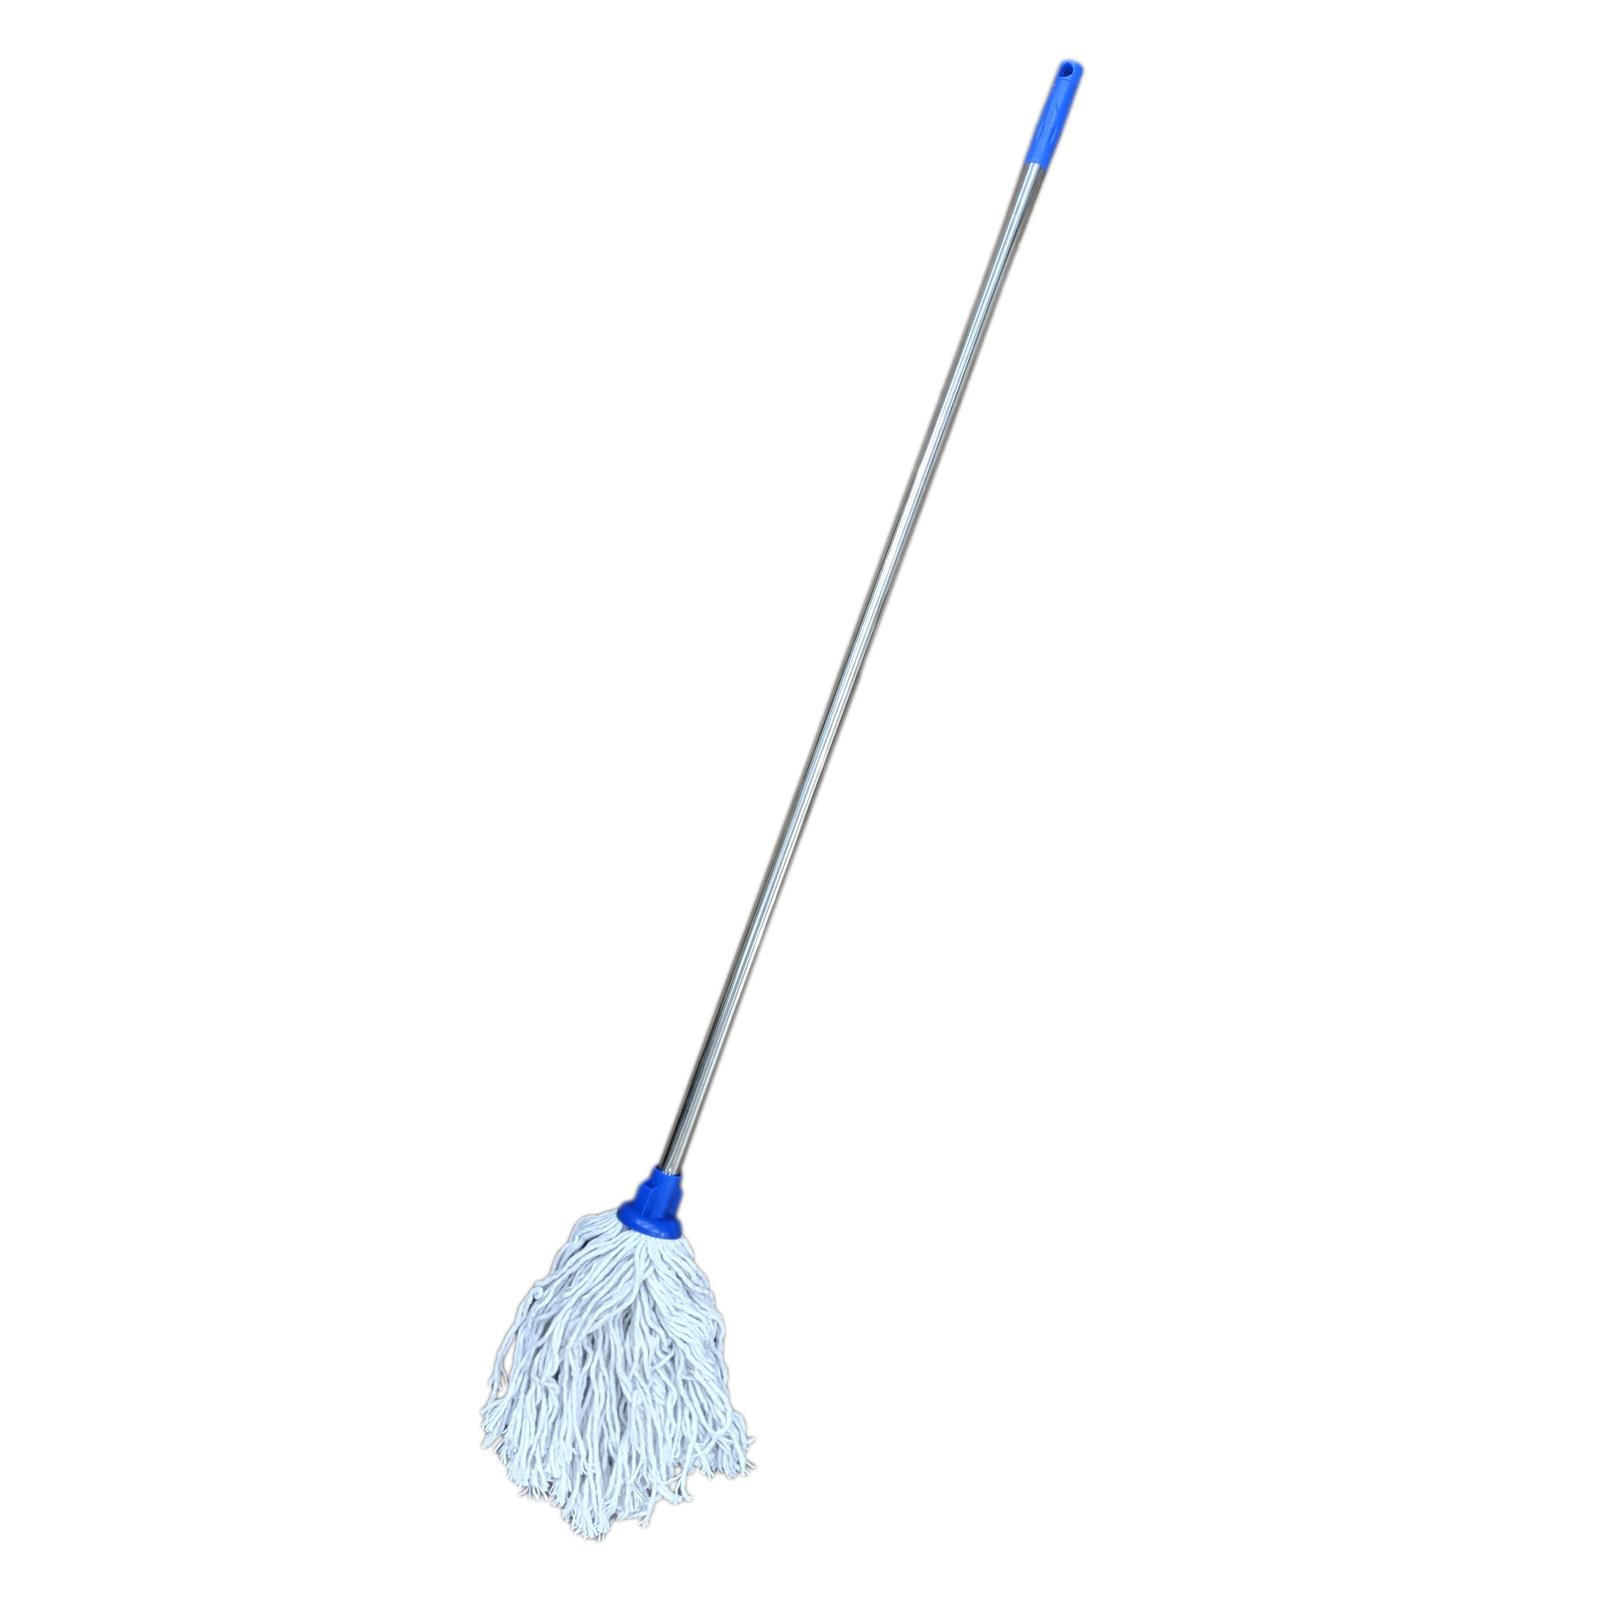 Amark Full Cotton Mop 300g with Stainless Steel Handle